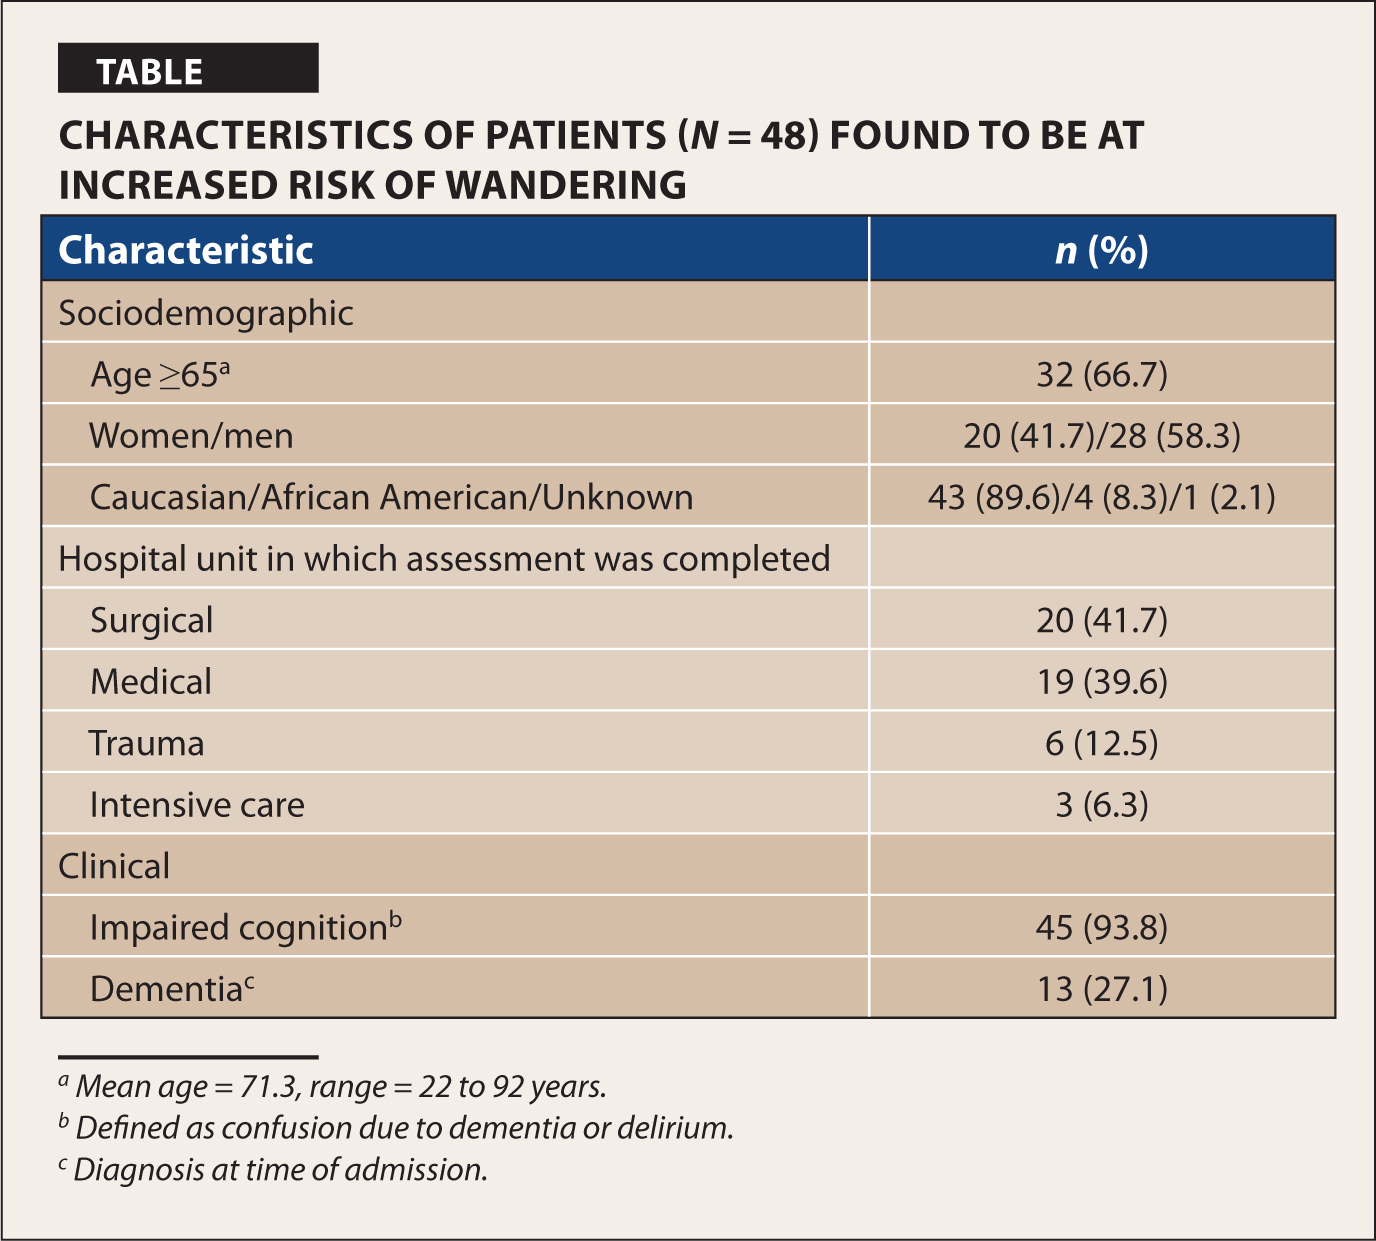 Characteristics of Patients (N = 48) Found to be at Increased Risk of Wandering